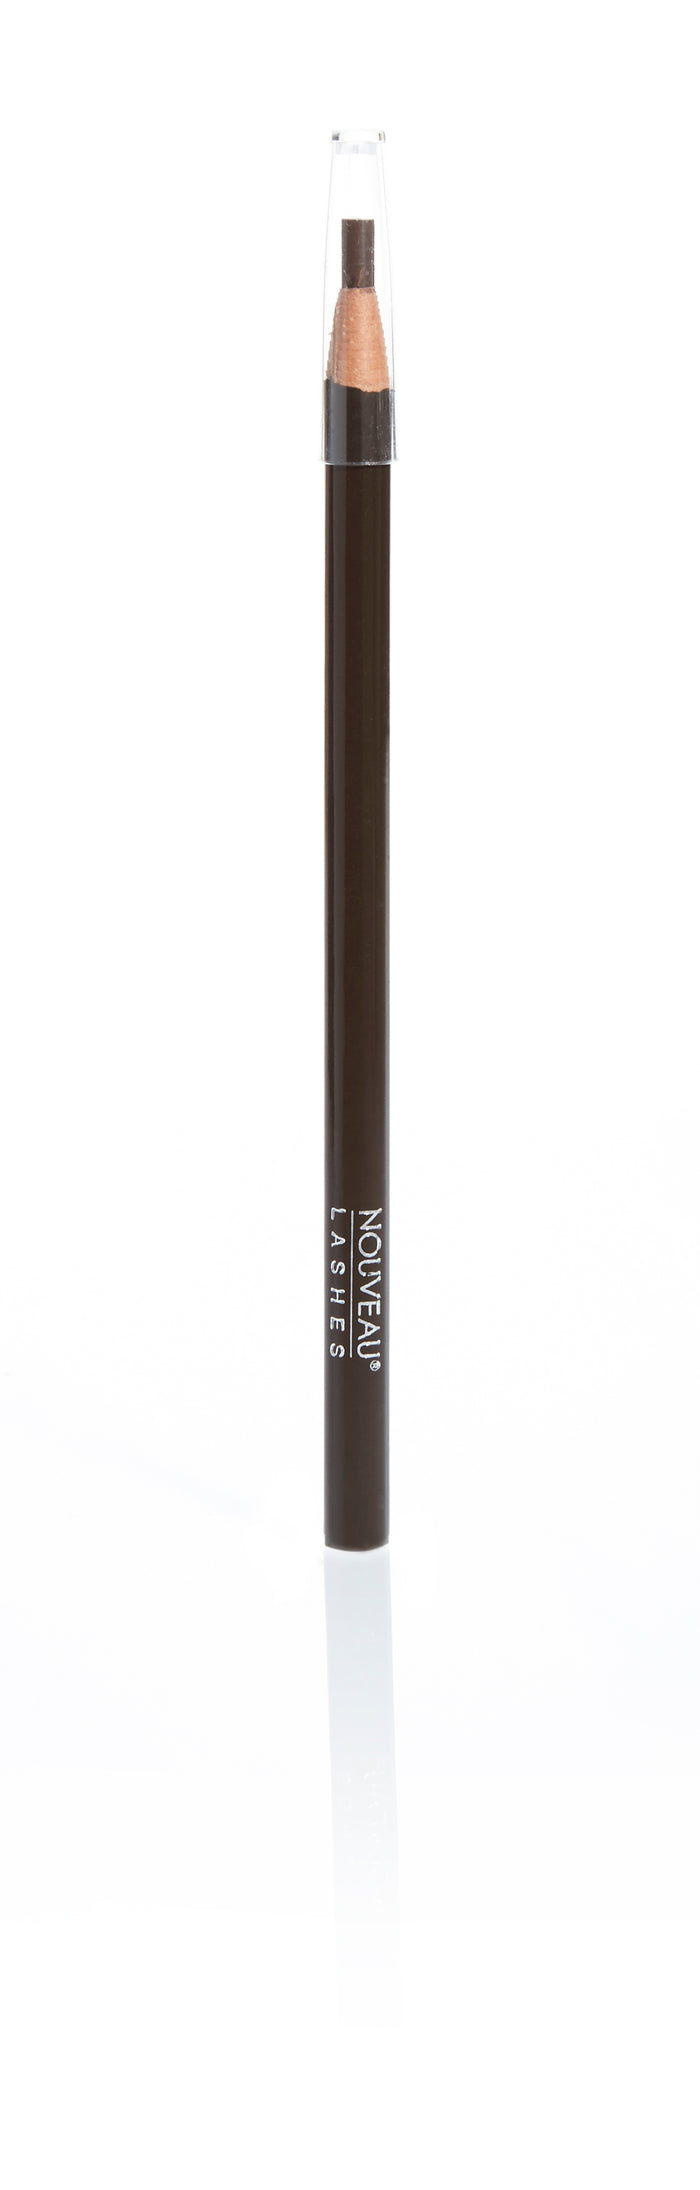 Brow Mapping Pencil - Nouveau Canada